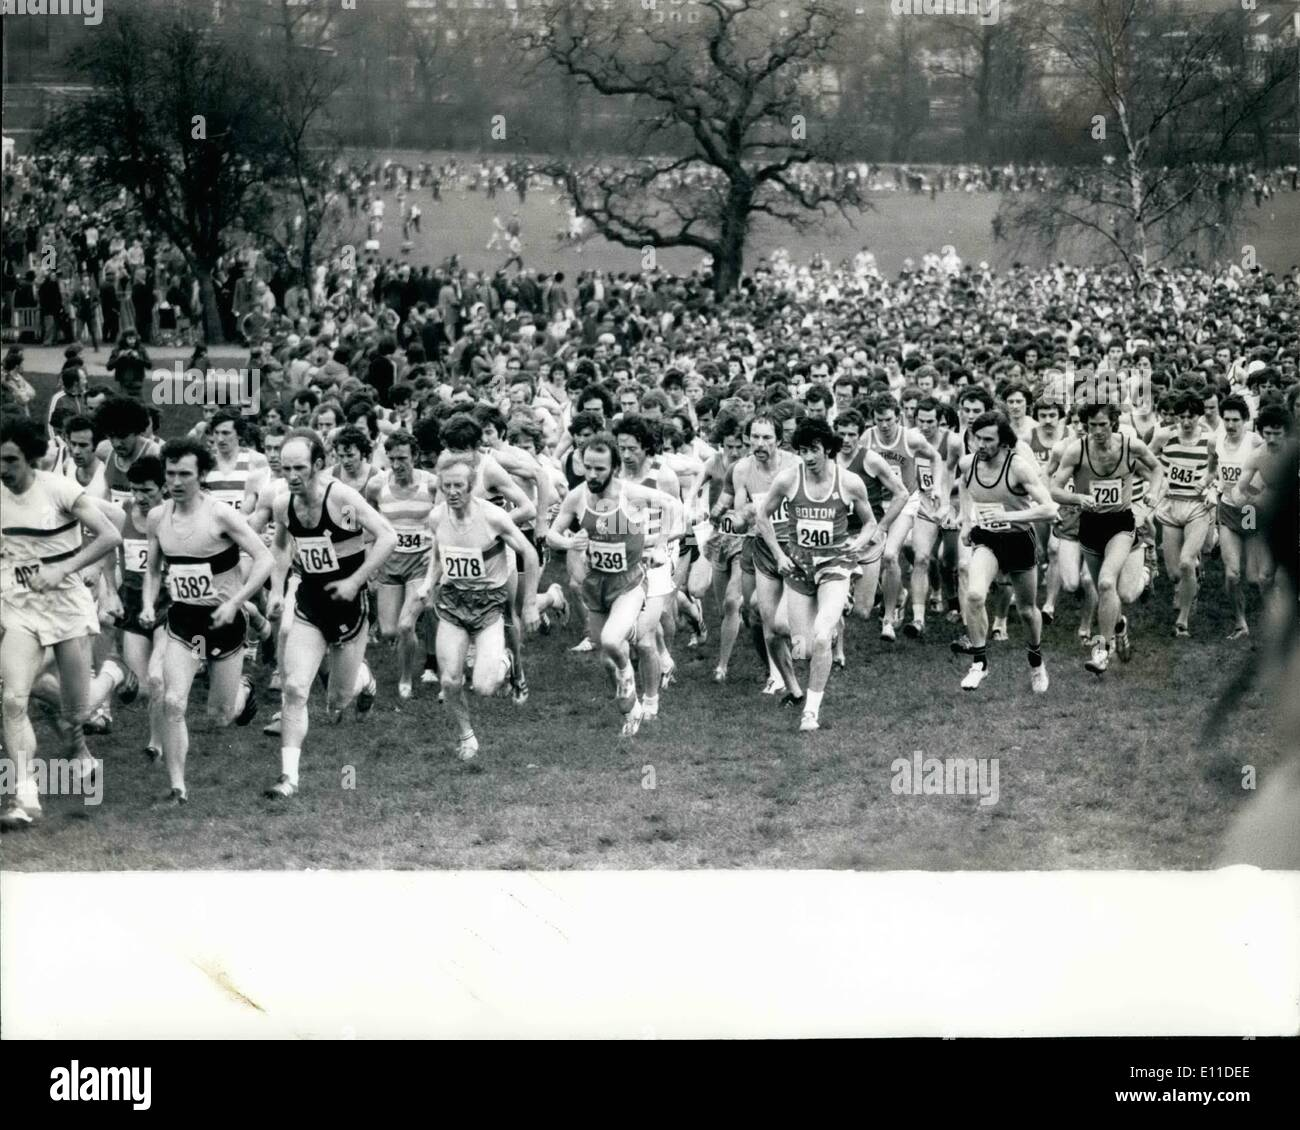 Mar. 03, 1977 - Brendan Foster wins senior event in English cross country championships: The senior event in the English Cross Country Championships, was won by Brendan Foster (Gateshead H & A.C.), at London's Parliament Hill Fields, today. Photo shows General view of the start of thessenior event in which 1500 competitors who took part. - Stock Image